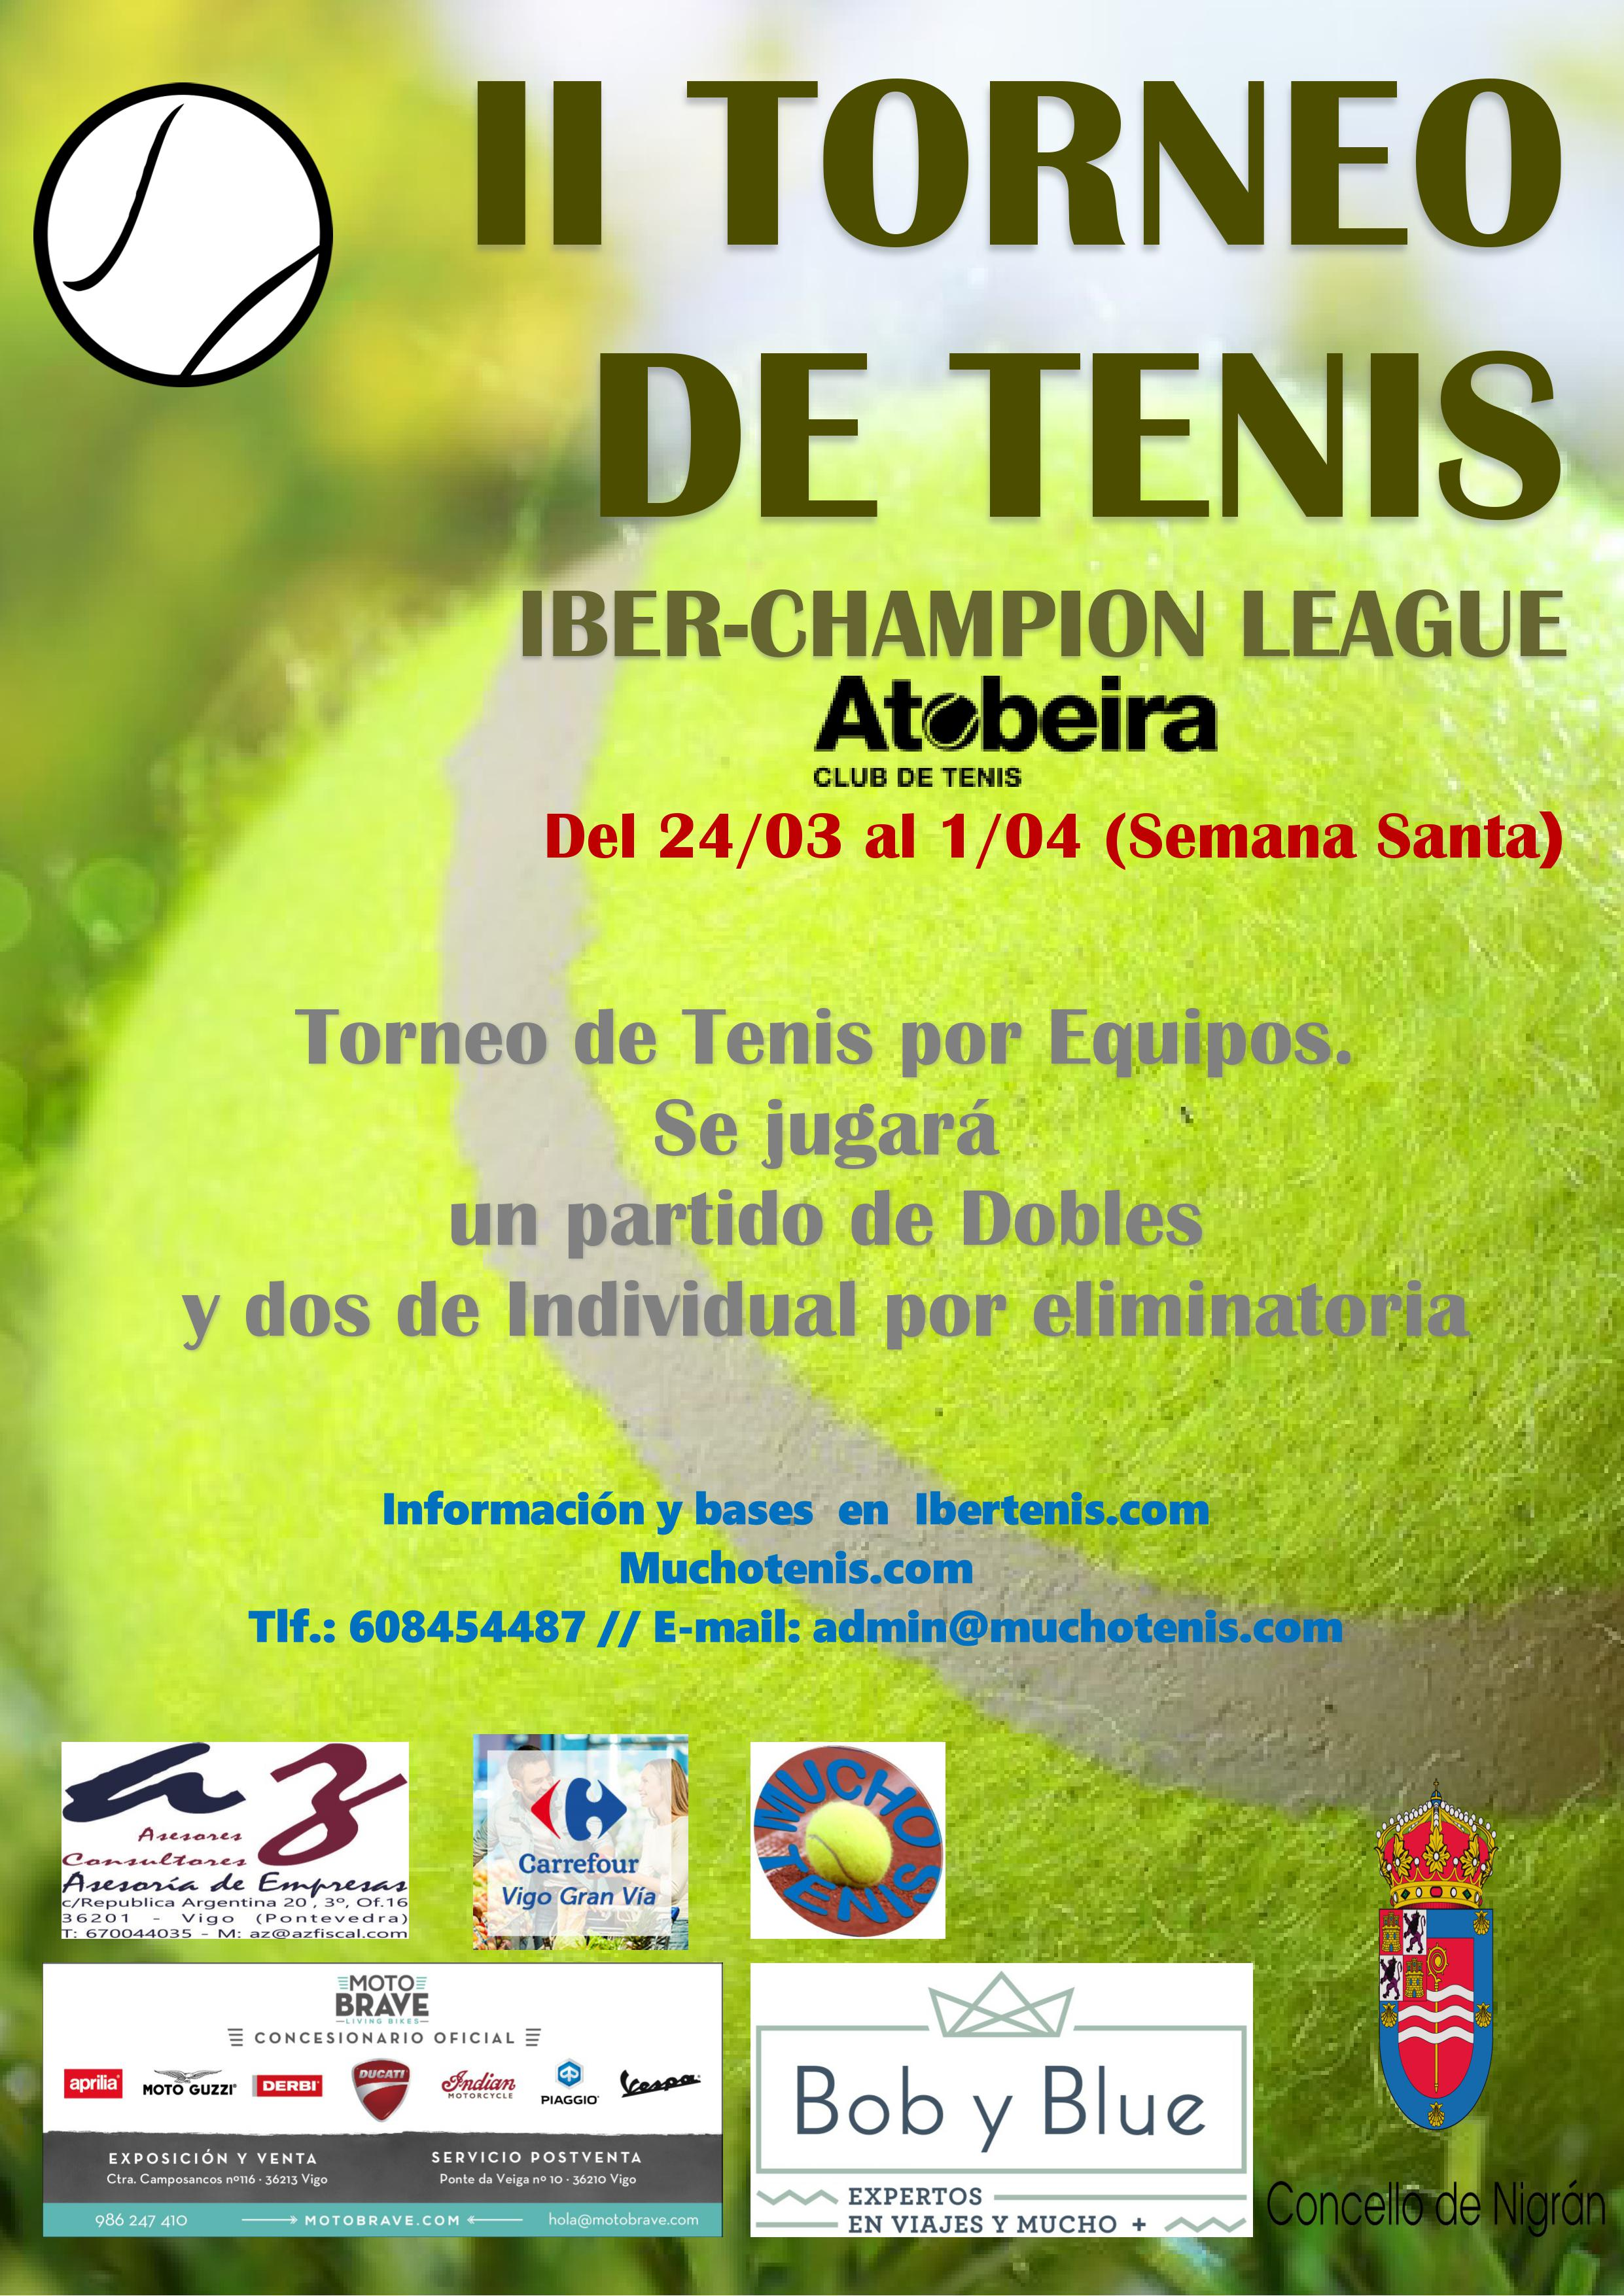 II Torneo Iber-Champion League de Tenis